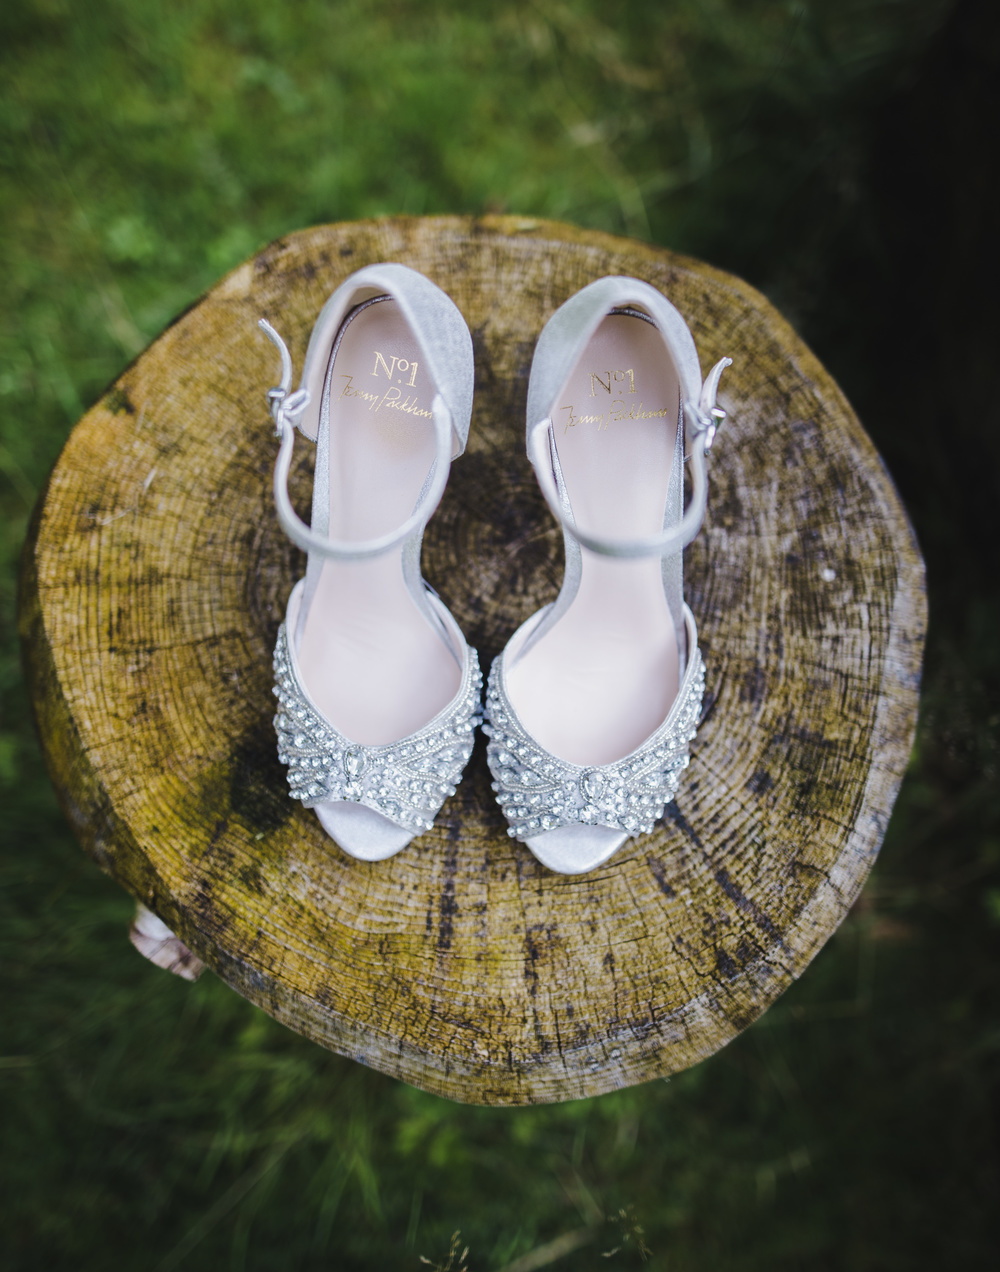 The bridal shoes if choice, relaxed wedding photographer